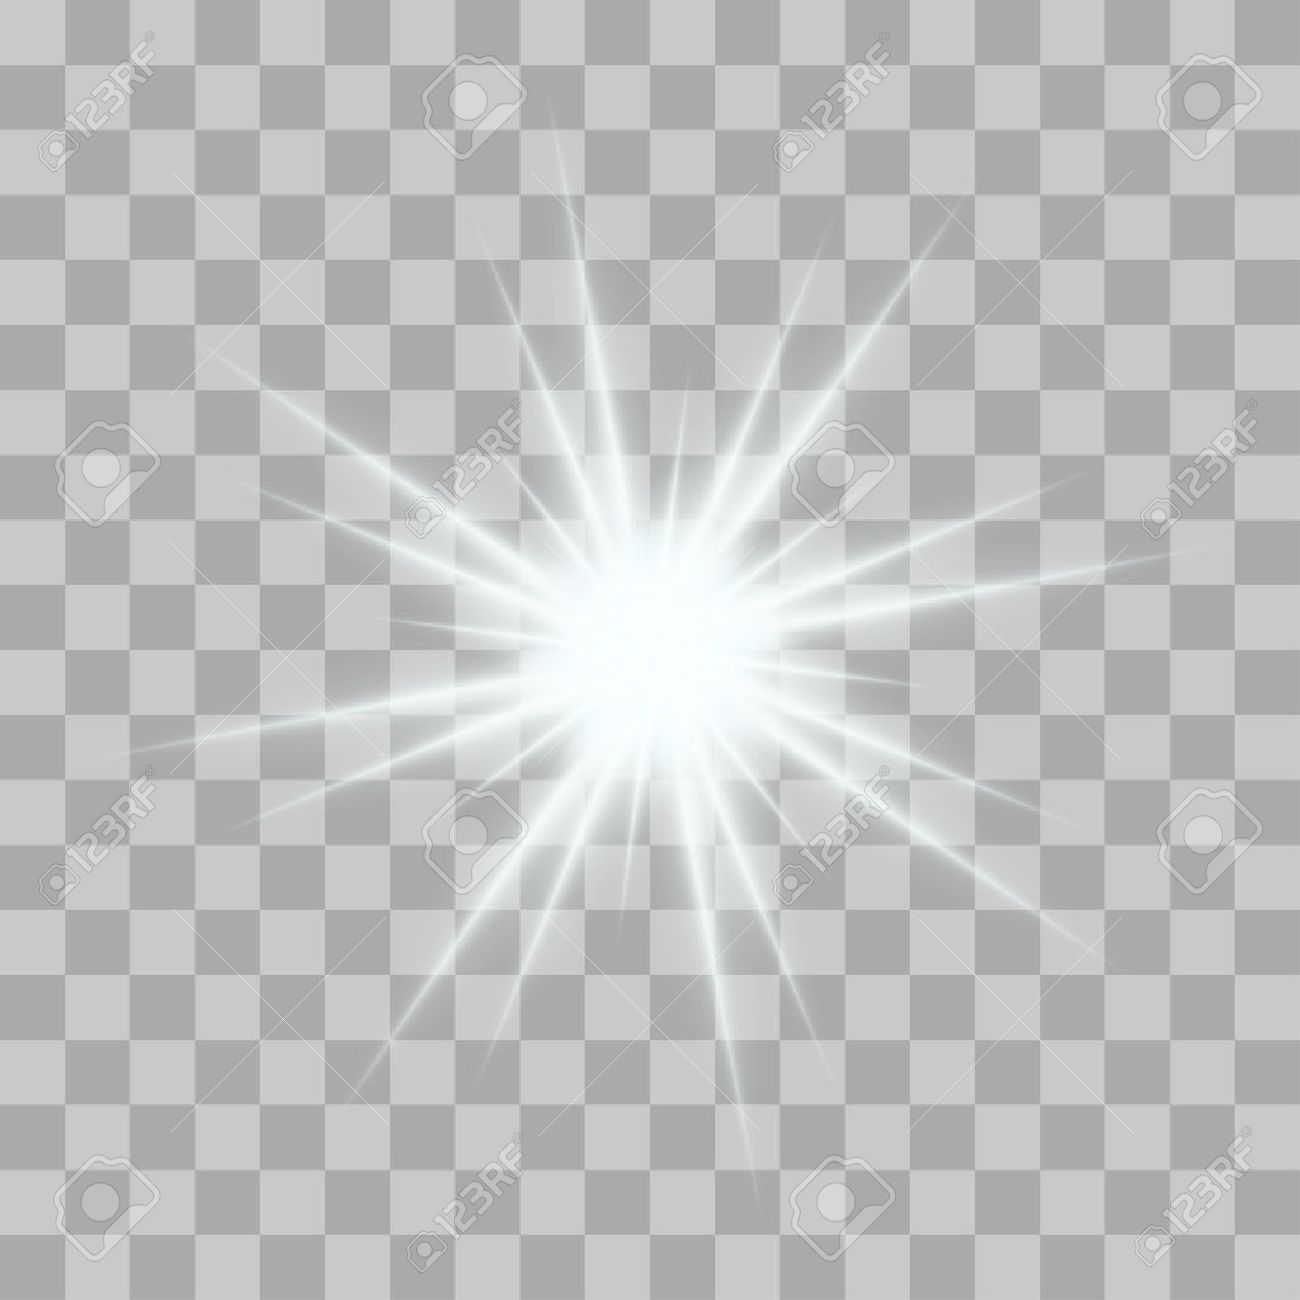 Vector glowing light bursts with sparkles on transparent background. Transparent gradient stars, lightning flare. Magic, bright, natural effects. Abstract texture for your design and business. - 51267329